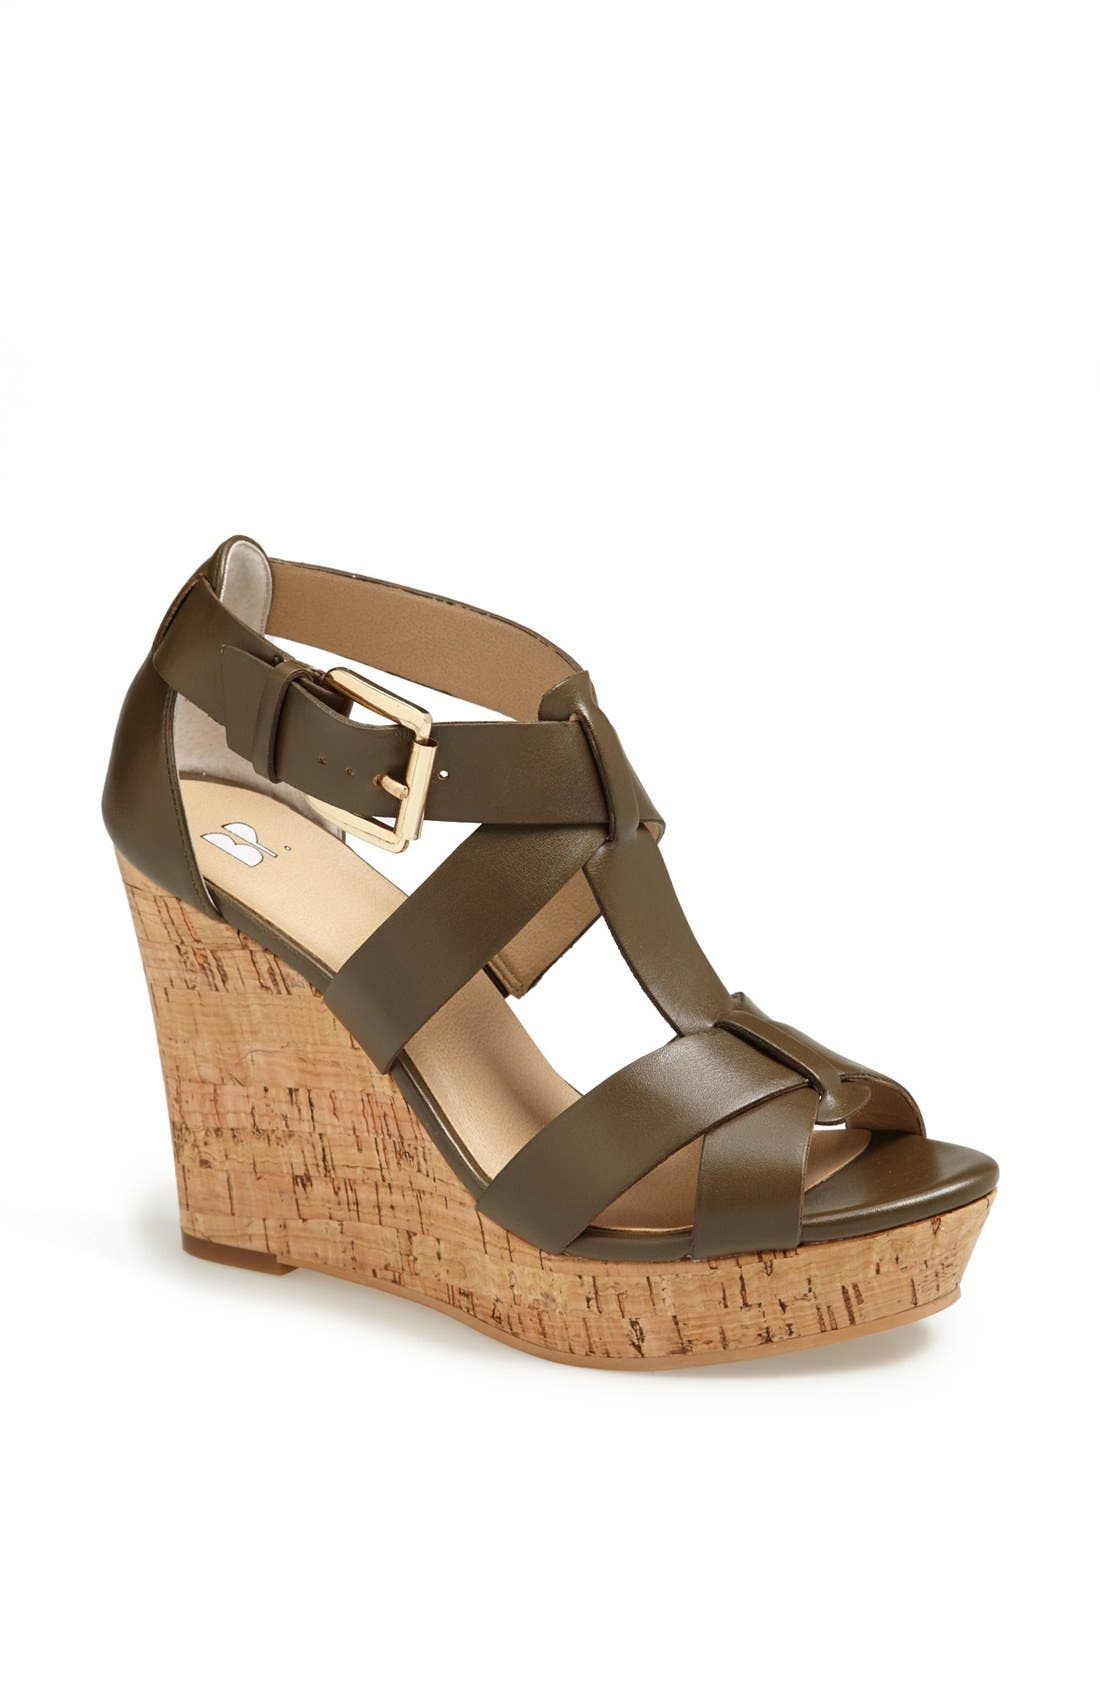 Main Image - BP. 'Daleray' Wedge Sandal